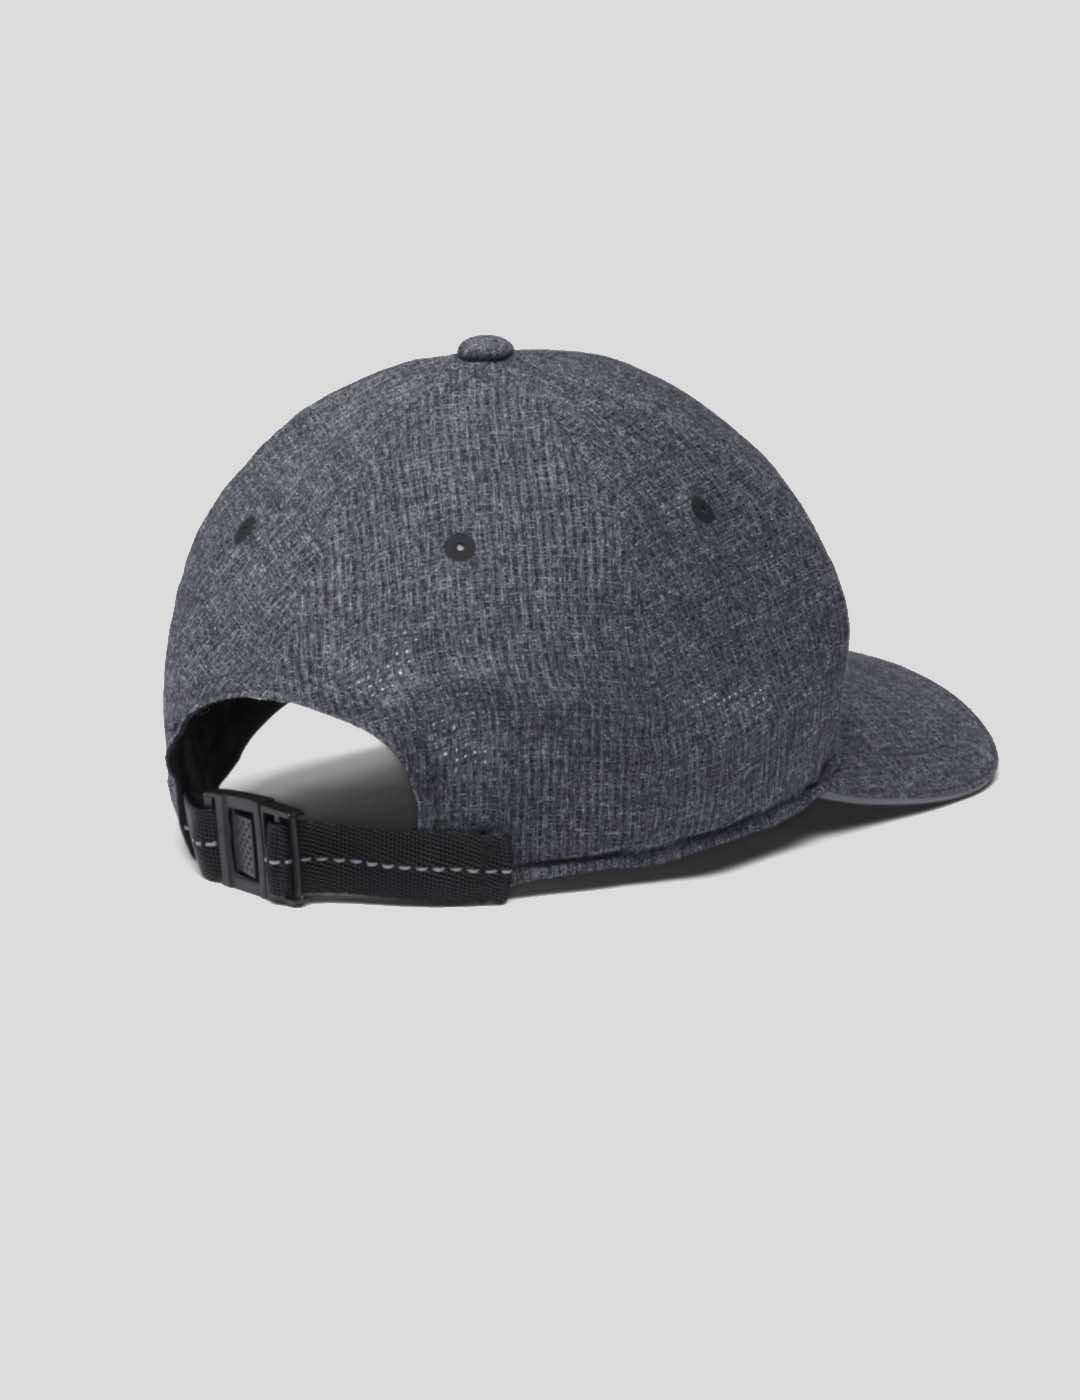 GORRA COLUMBIA IRICO 110 BALL CAP BLACK